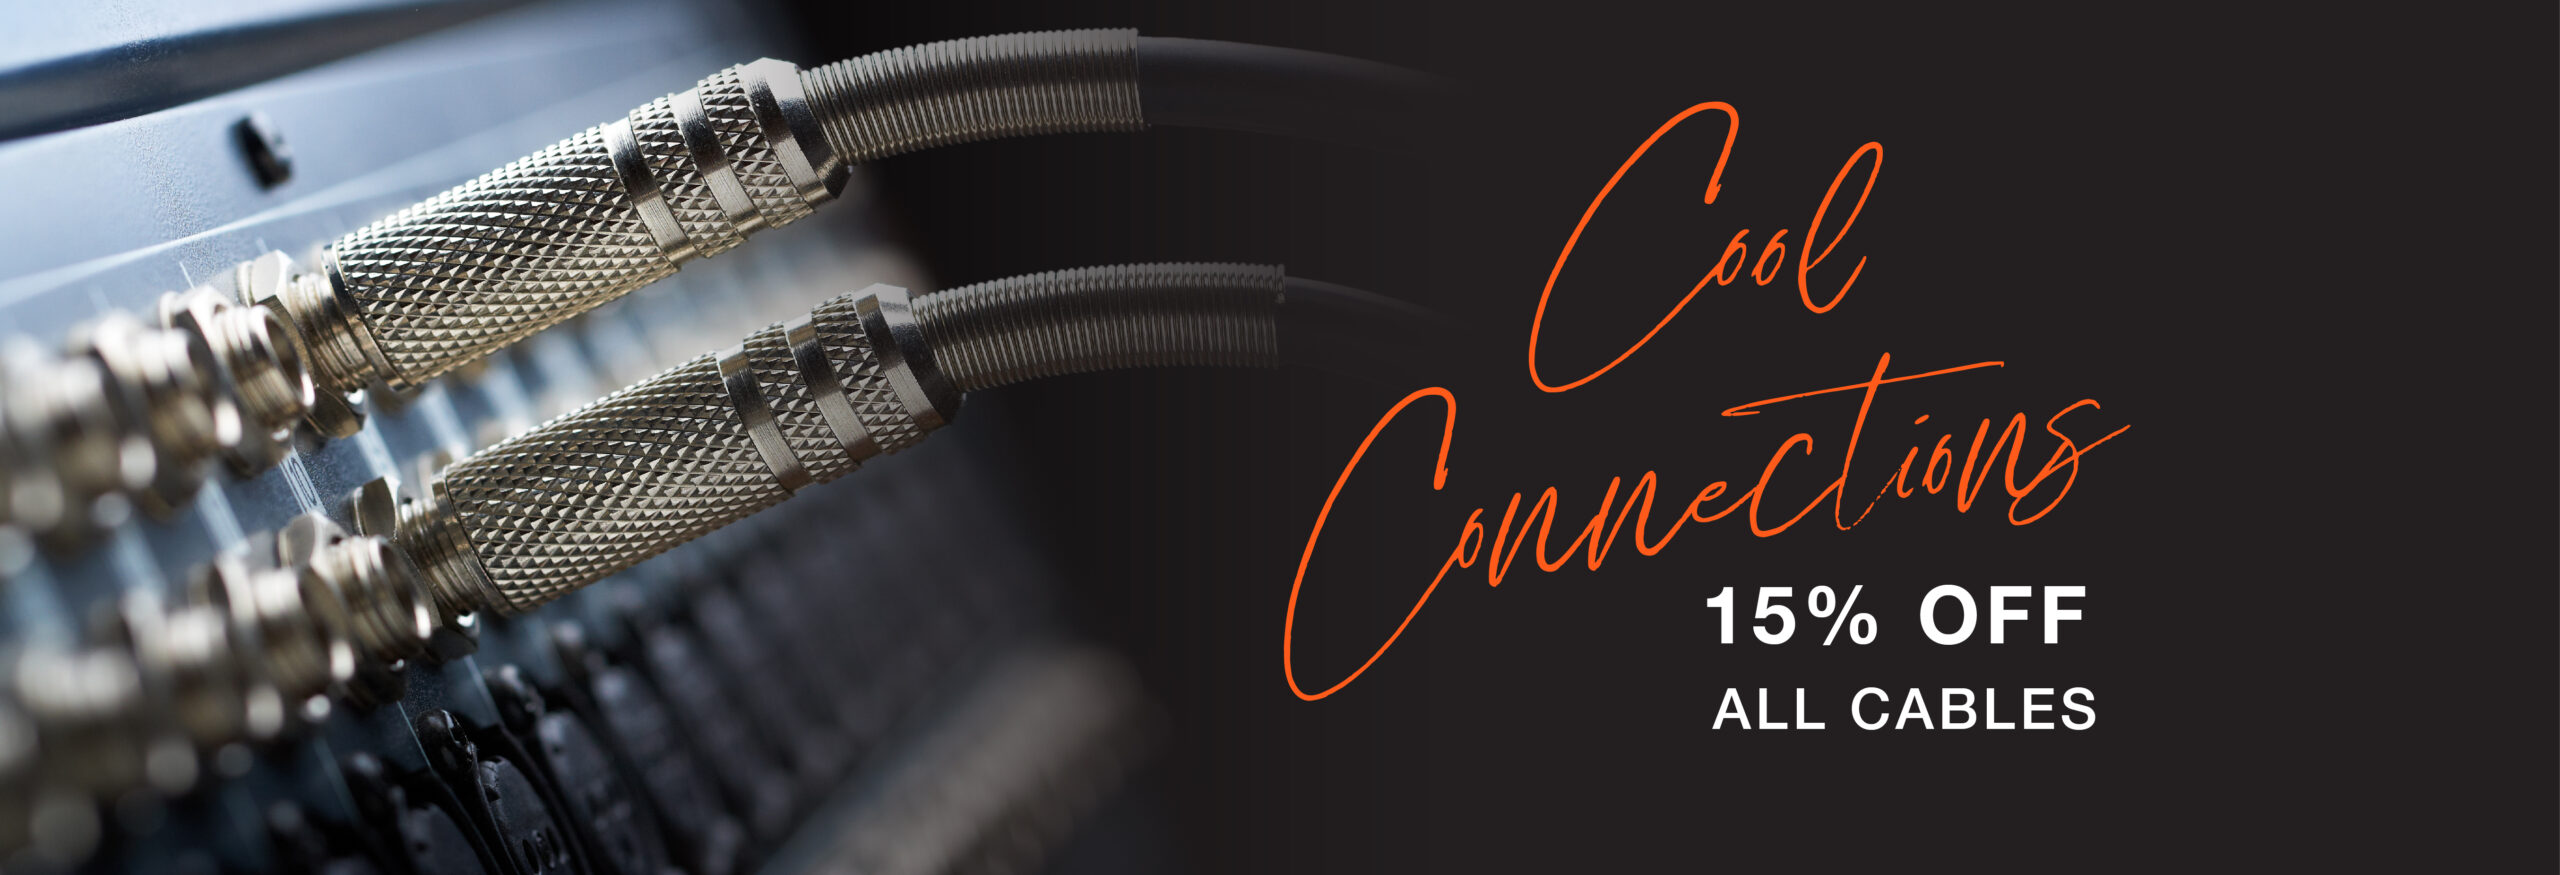 New Web Banners Cables